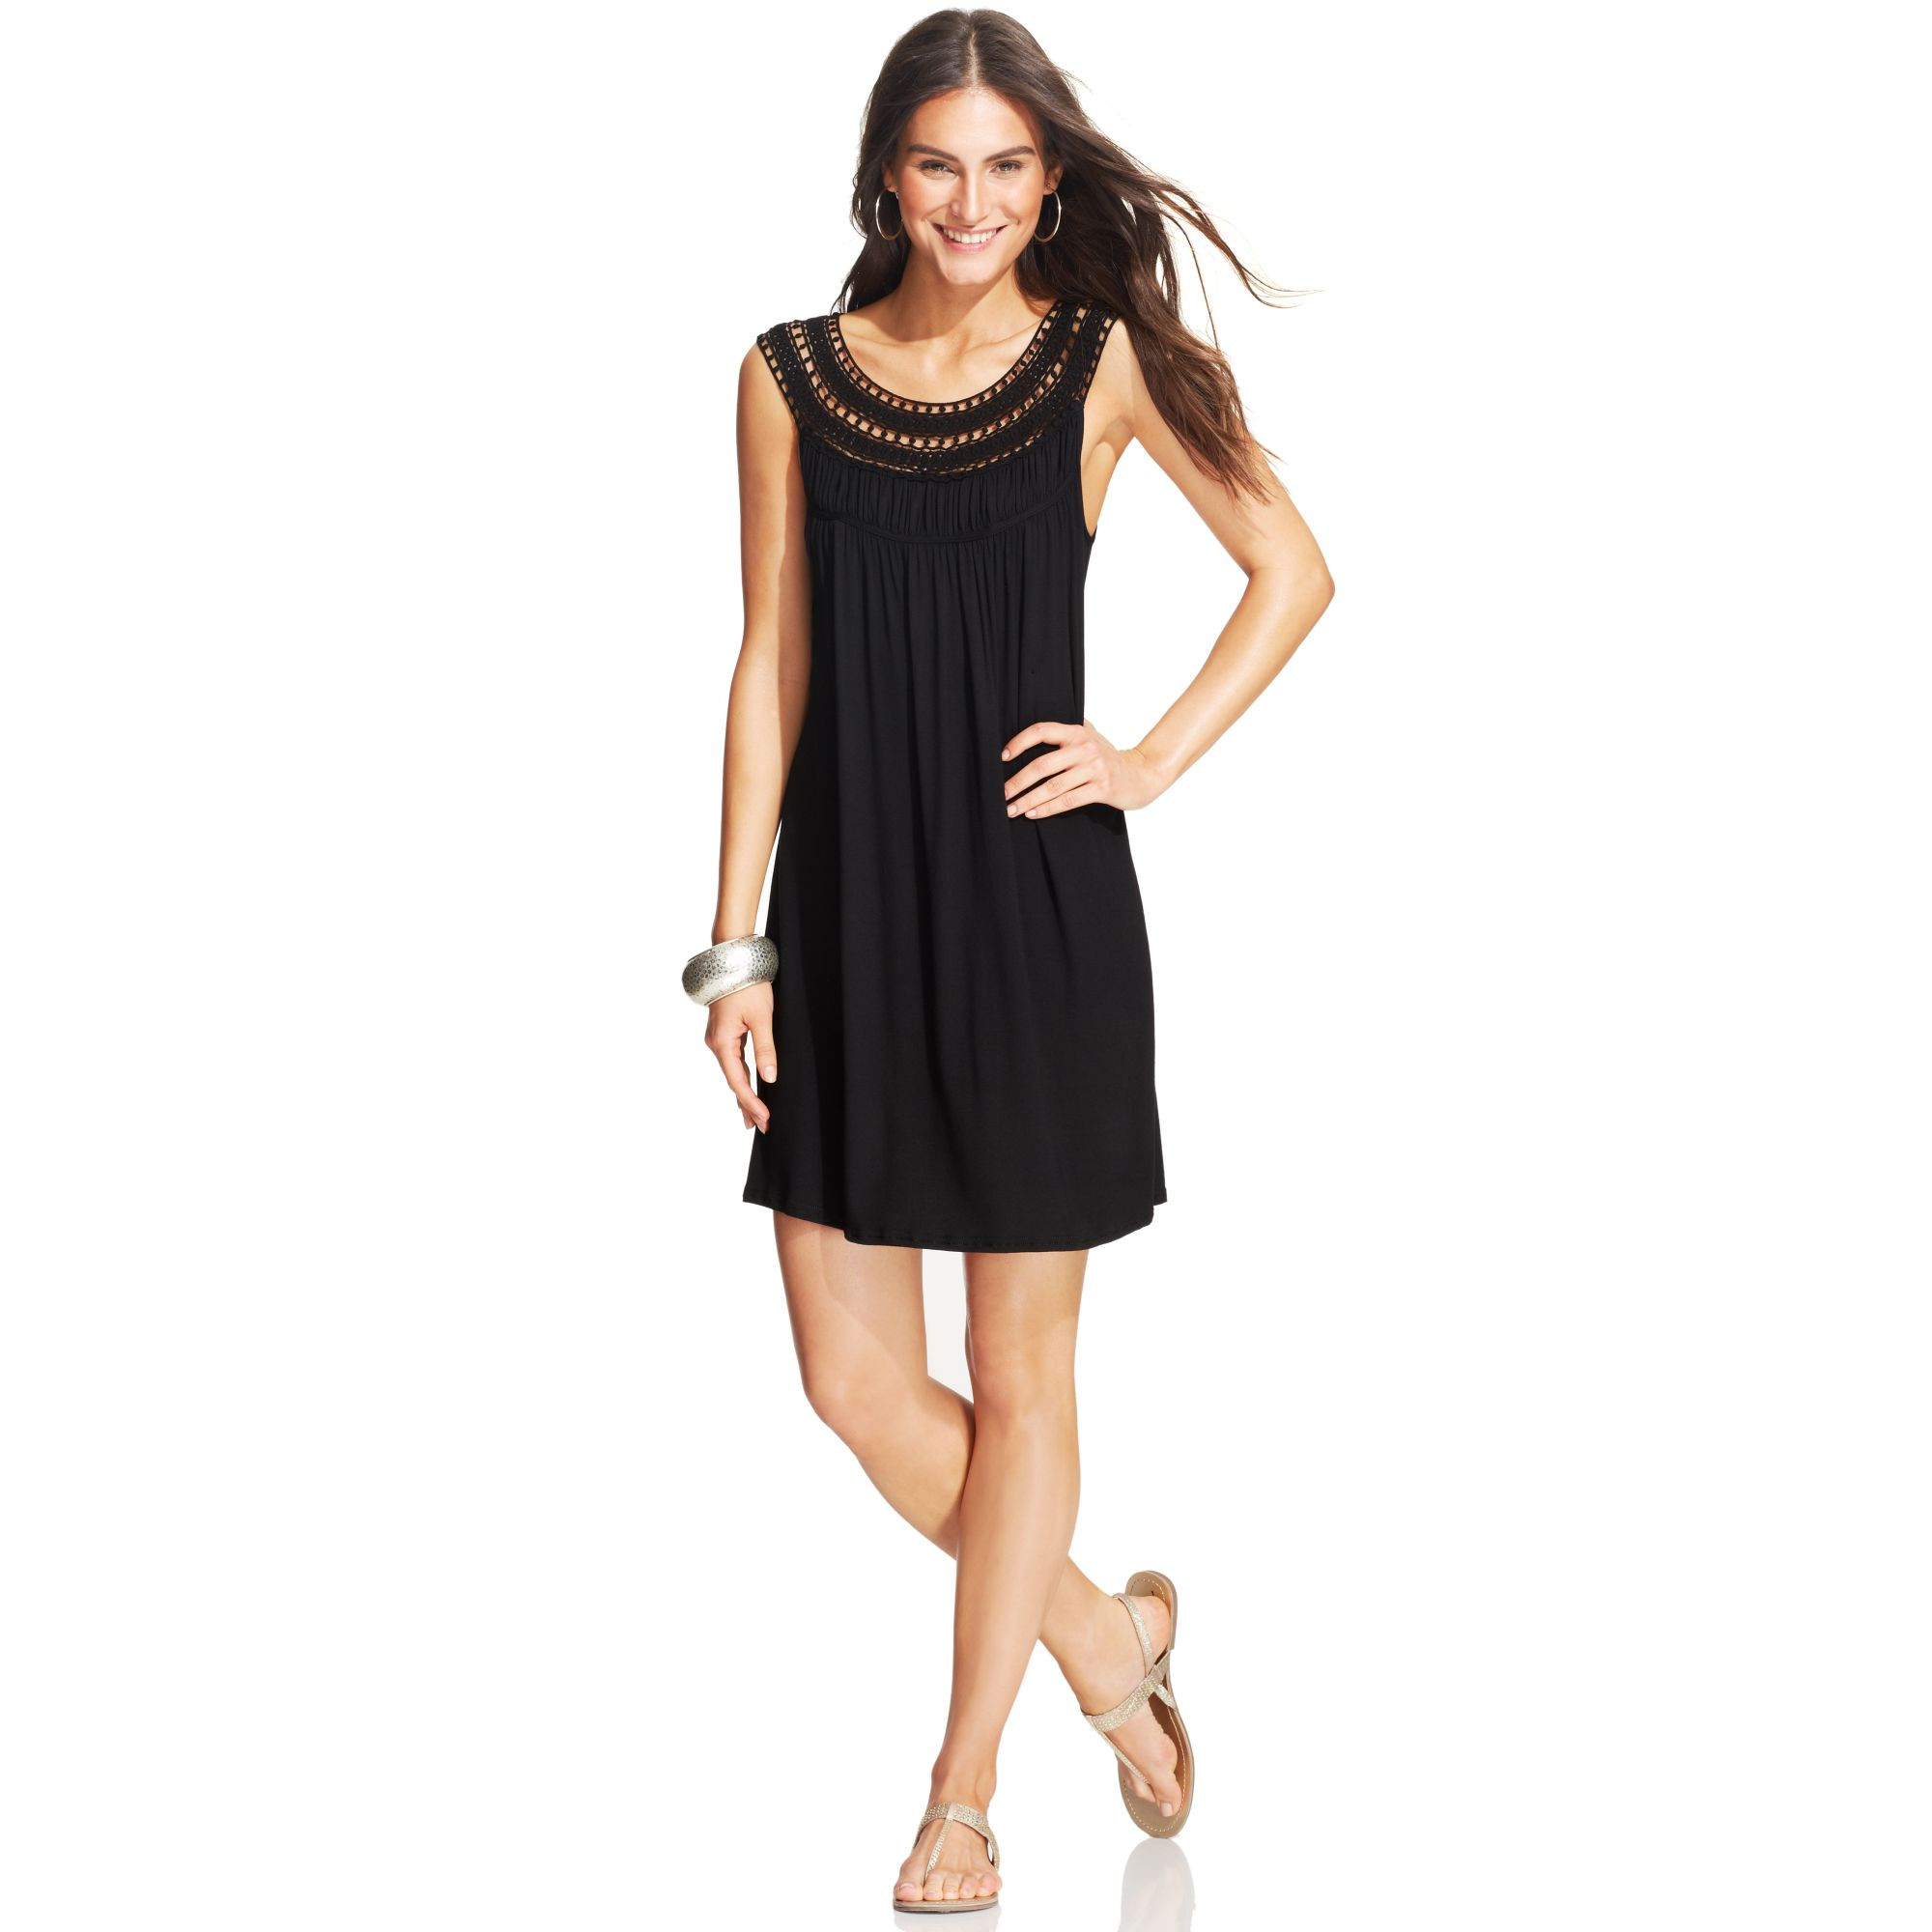 New Kenneth Cole Reaction Crochet Neck Dress Cover Up In Black Black Crochet Cover Up Of Superb 42 Images Black Crochet Cover Up